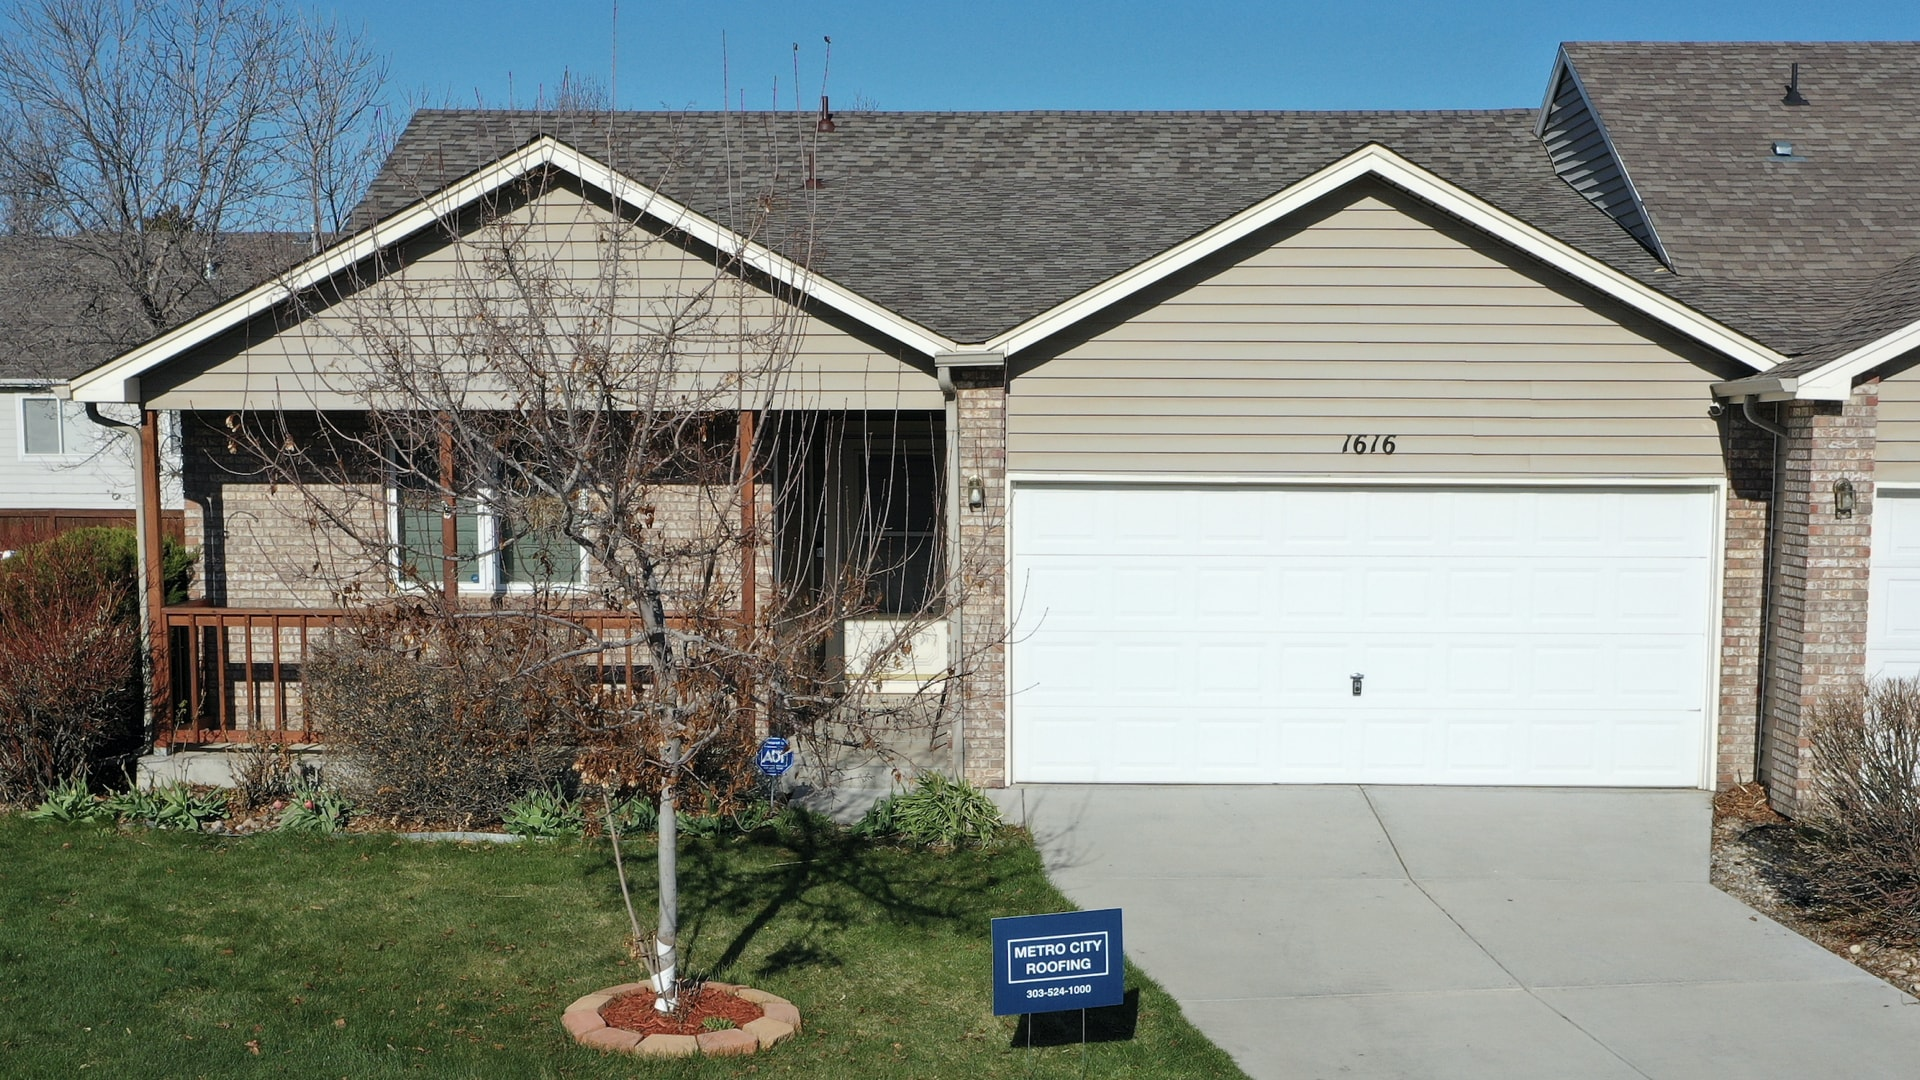 Beige, ranch style duplex in Loveland, Colorado with blue Metro City Roofing sign in the foreground